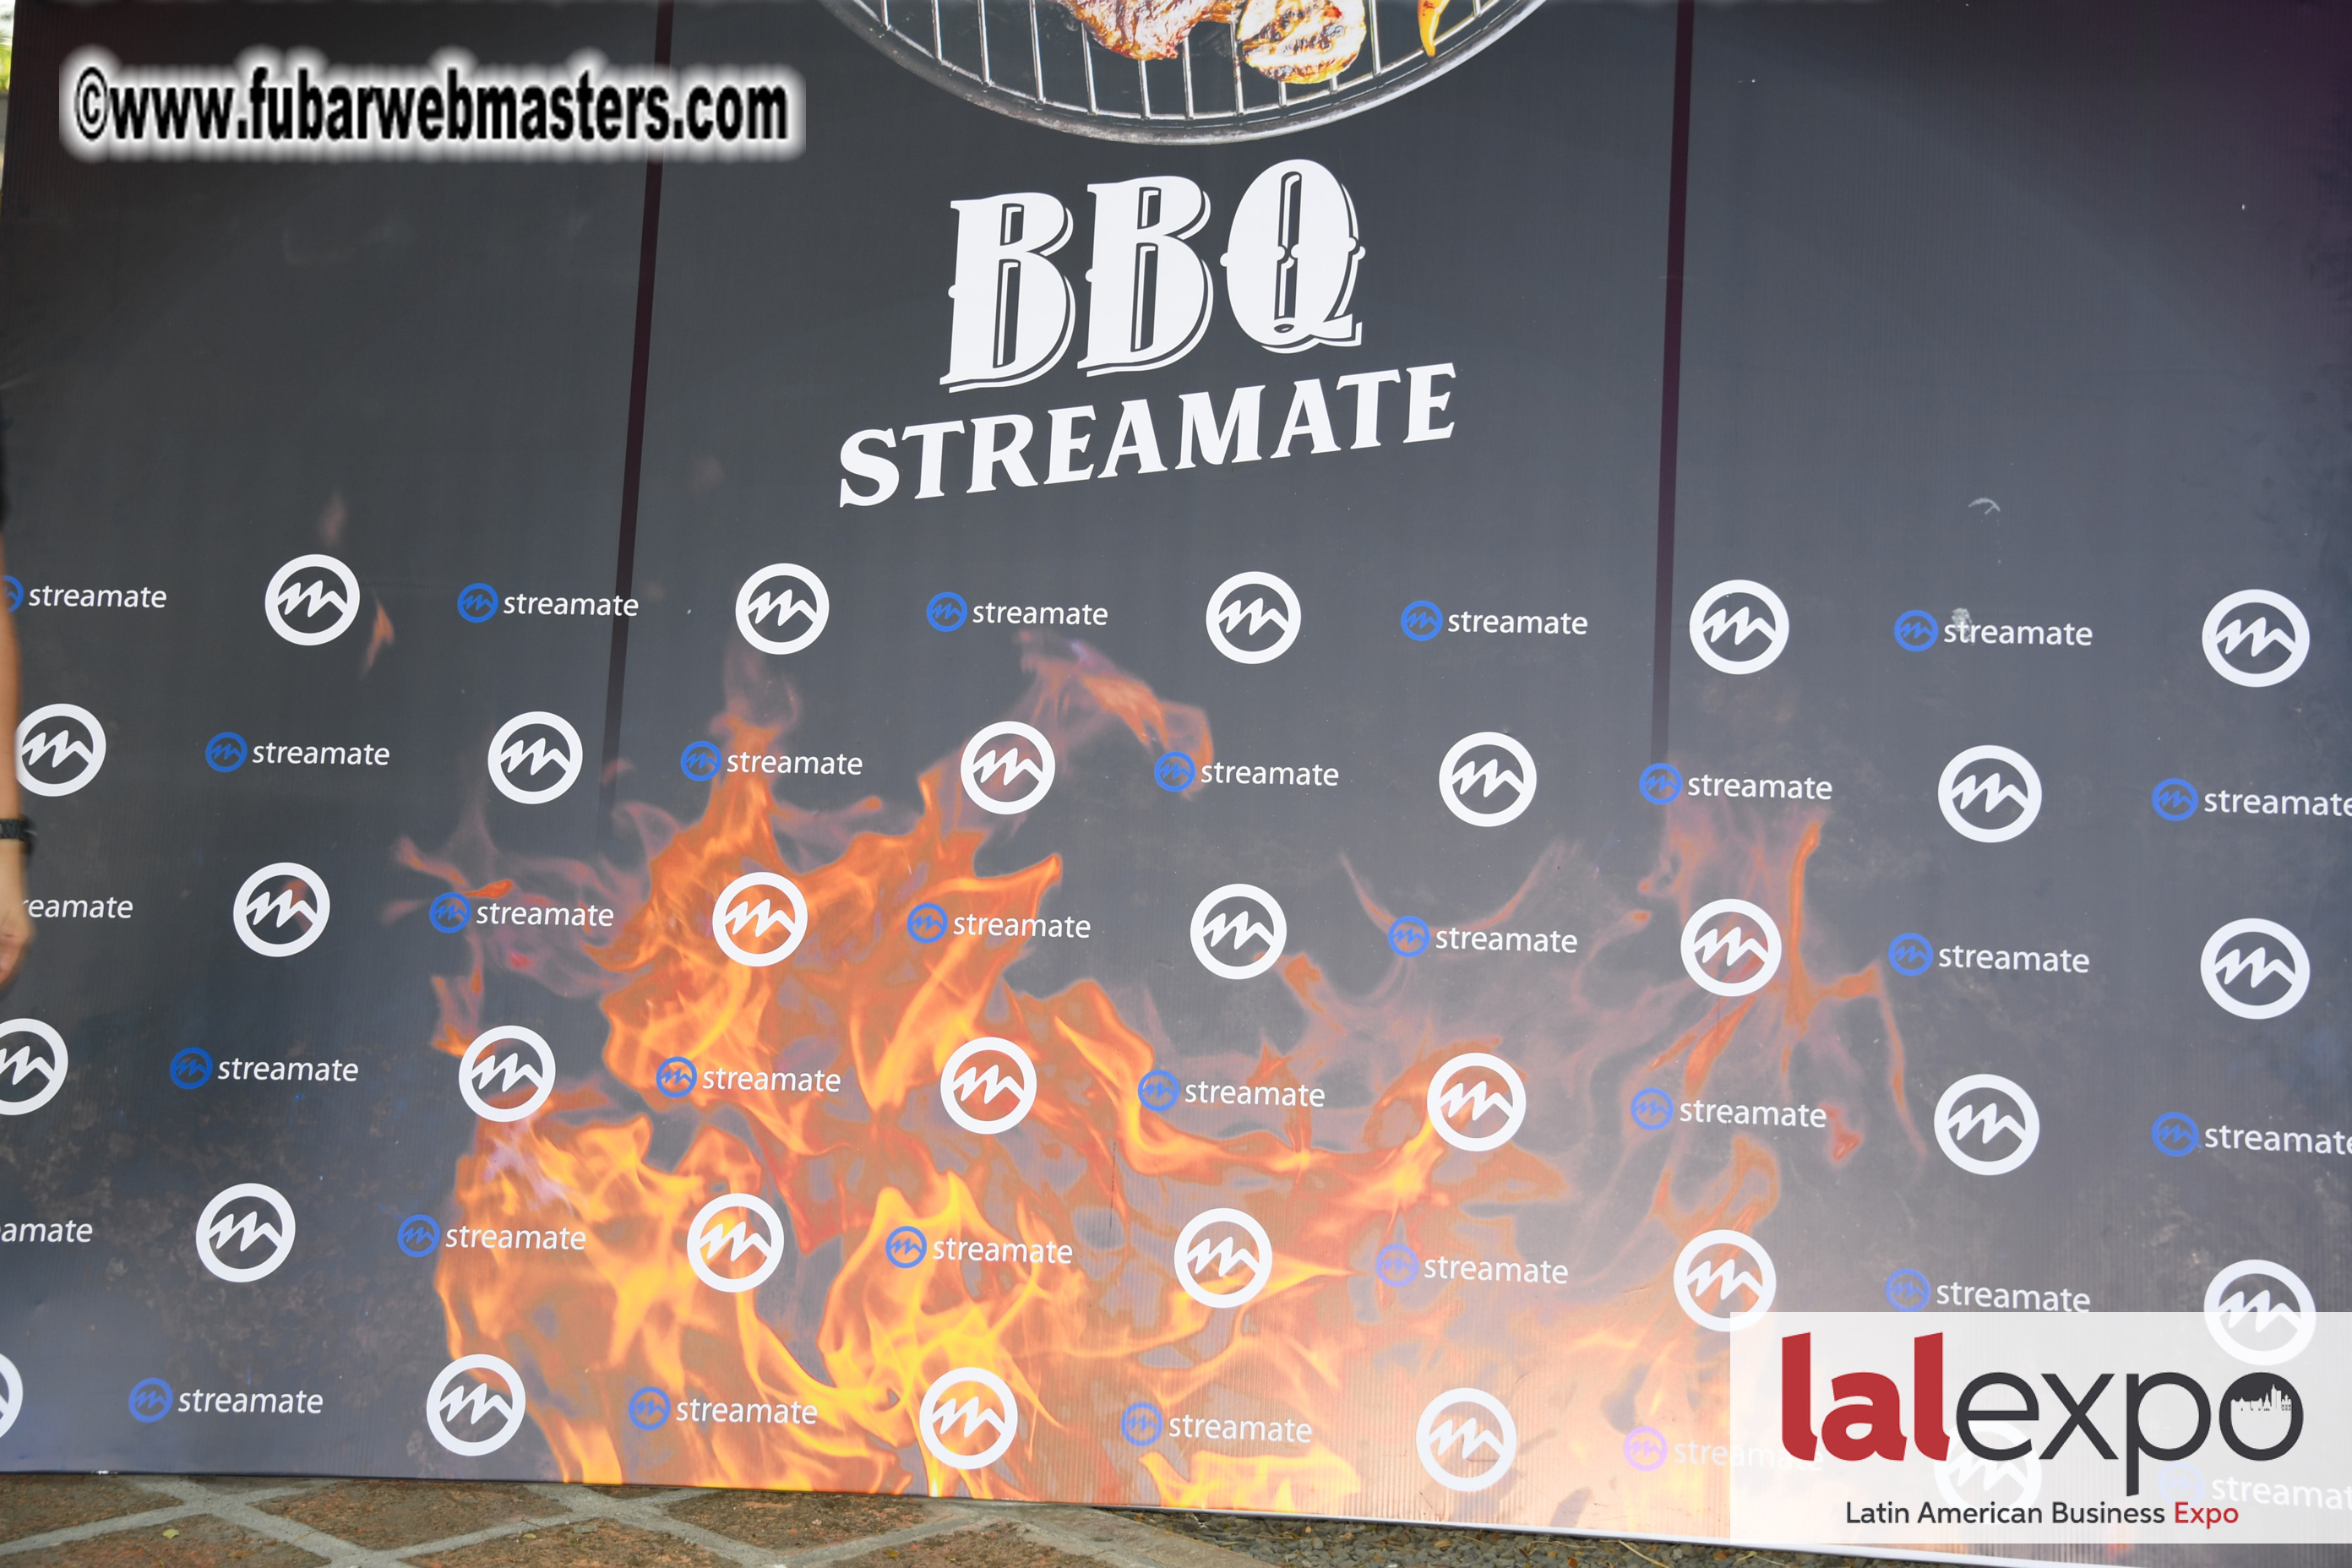 Streamate BBQ Party